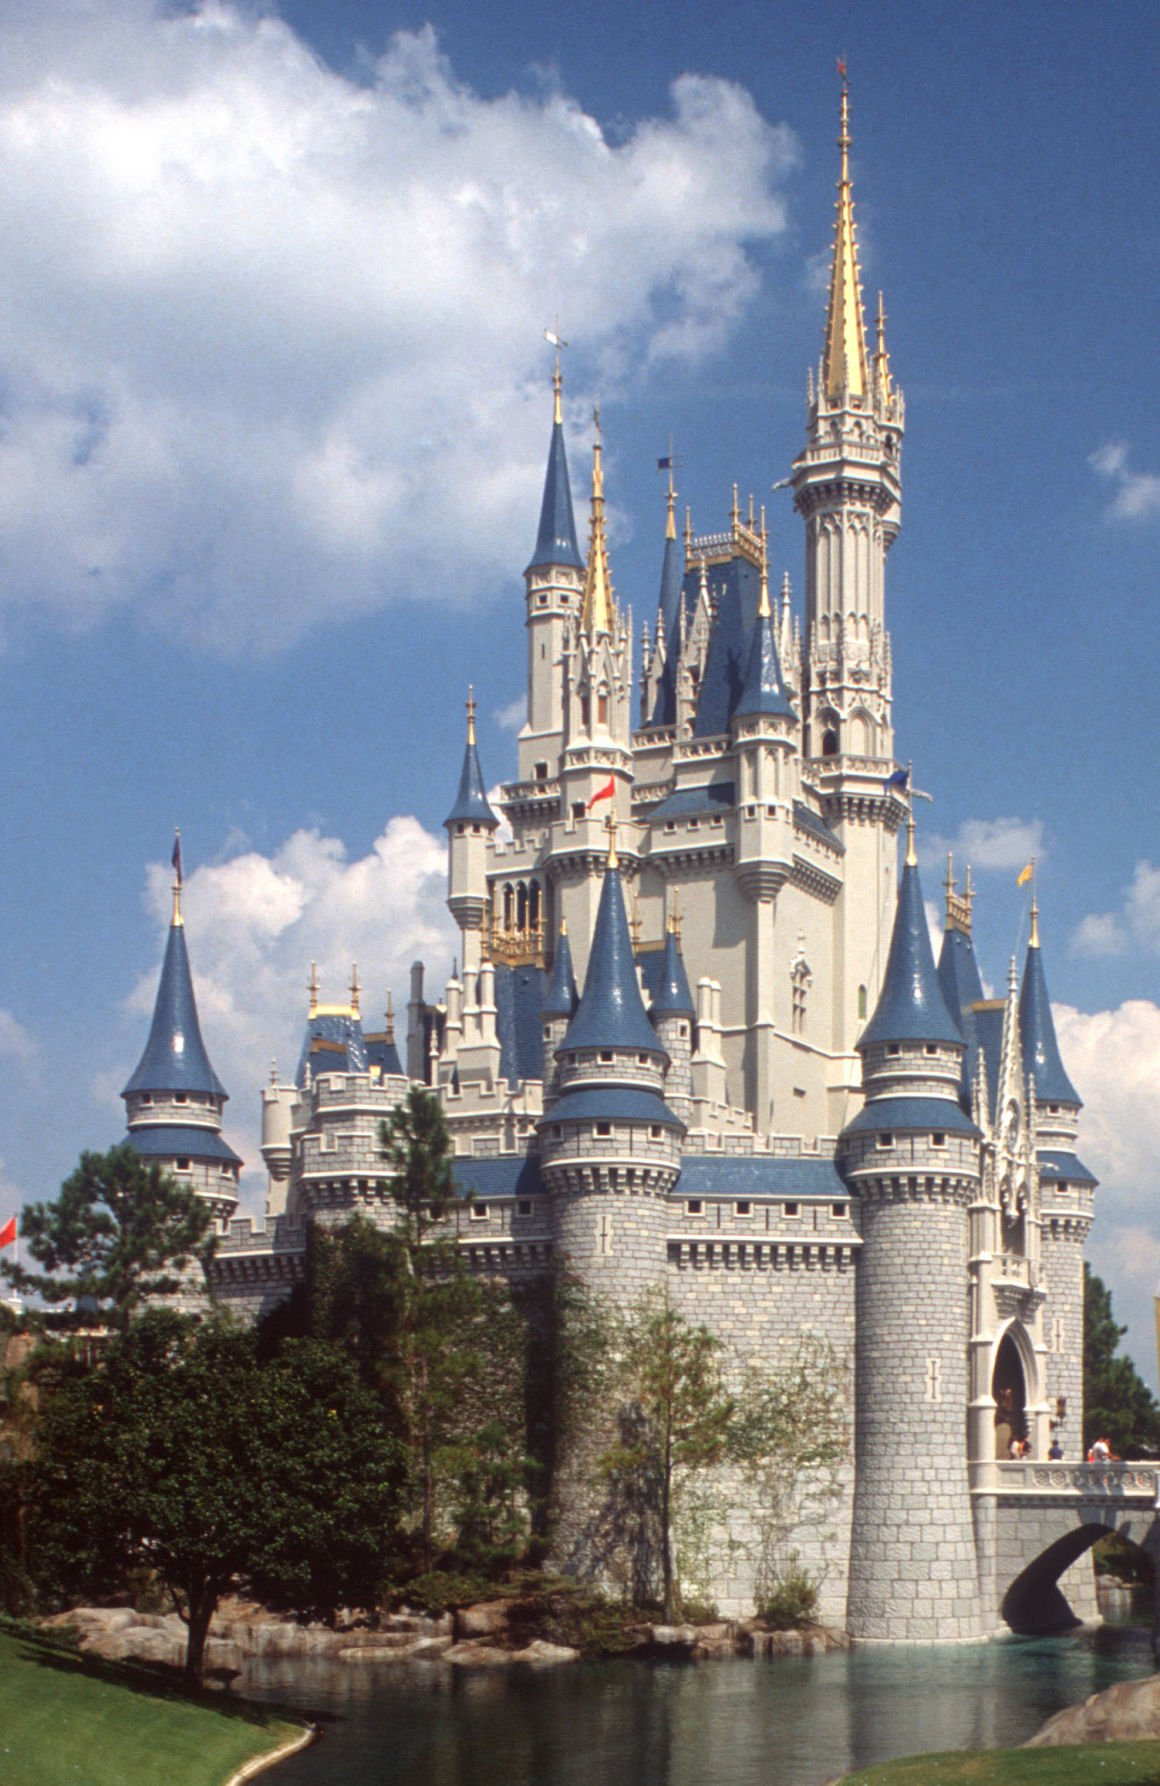 Travel agent No reason to cancel Disney World trip